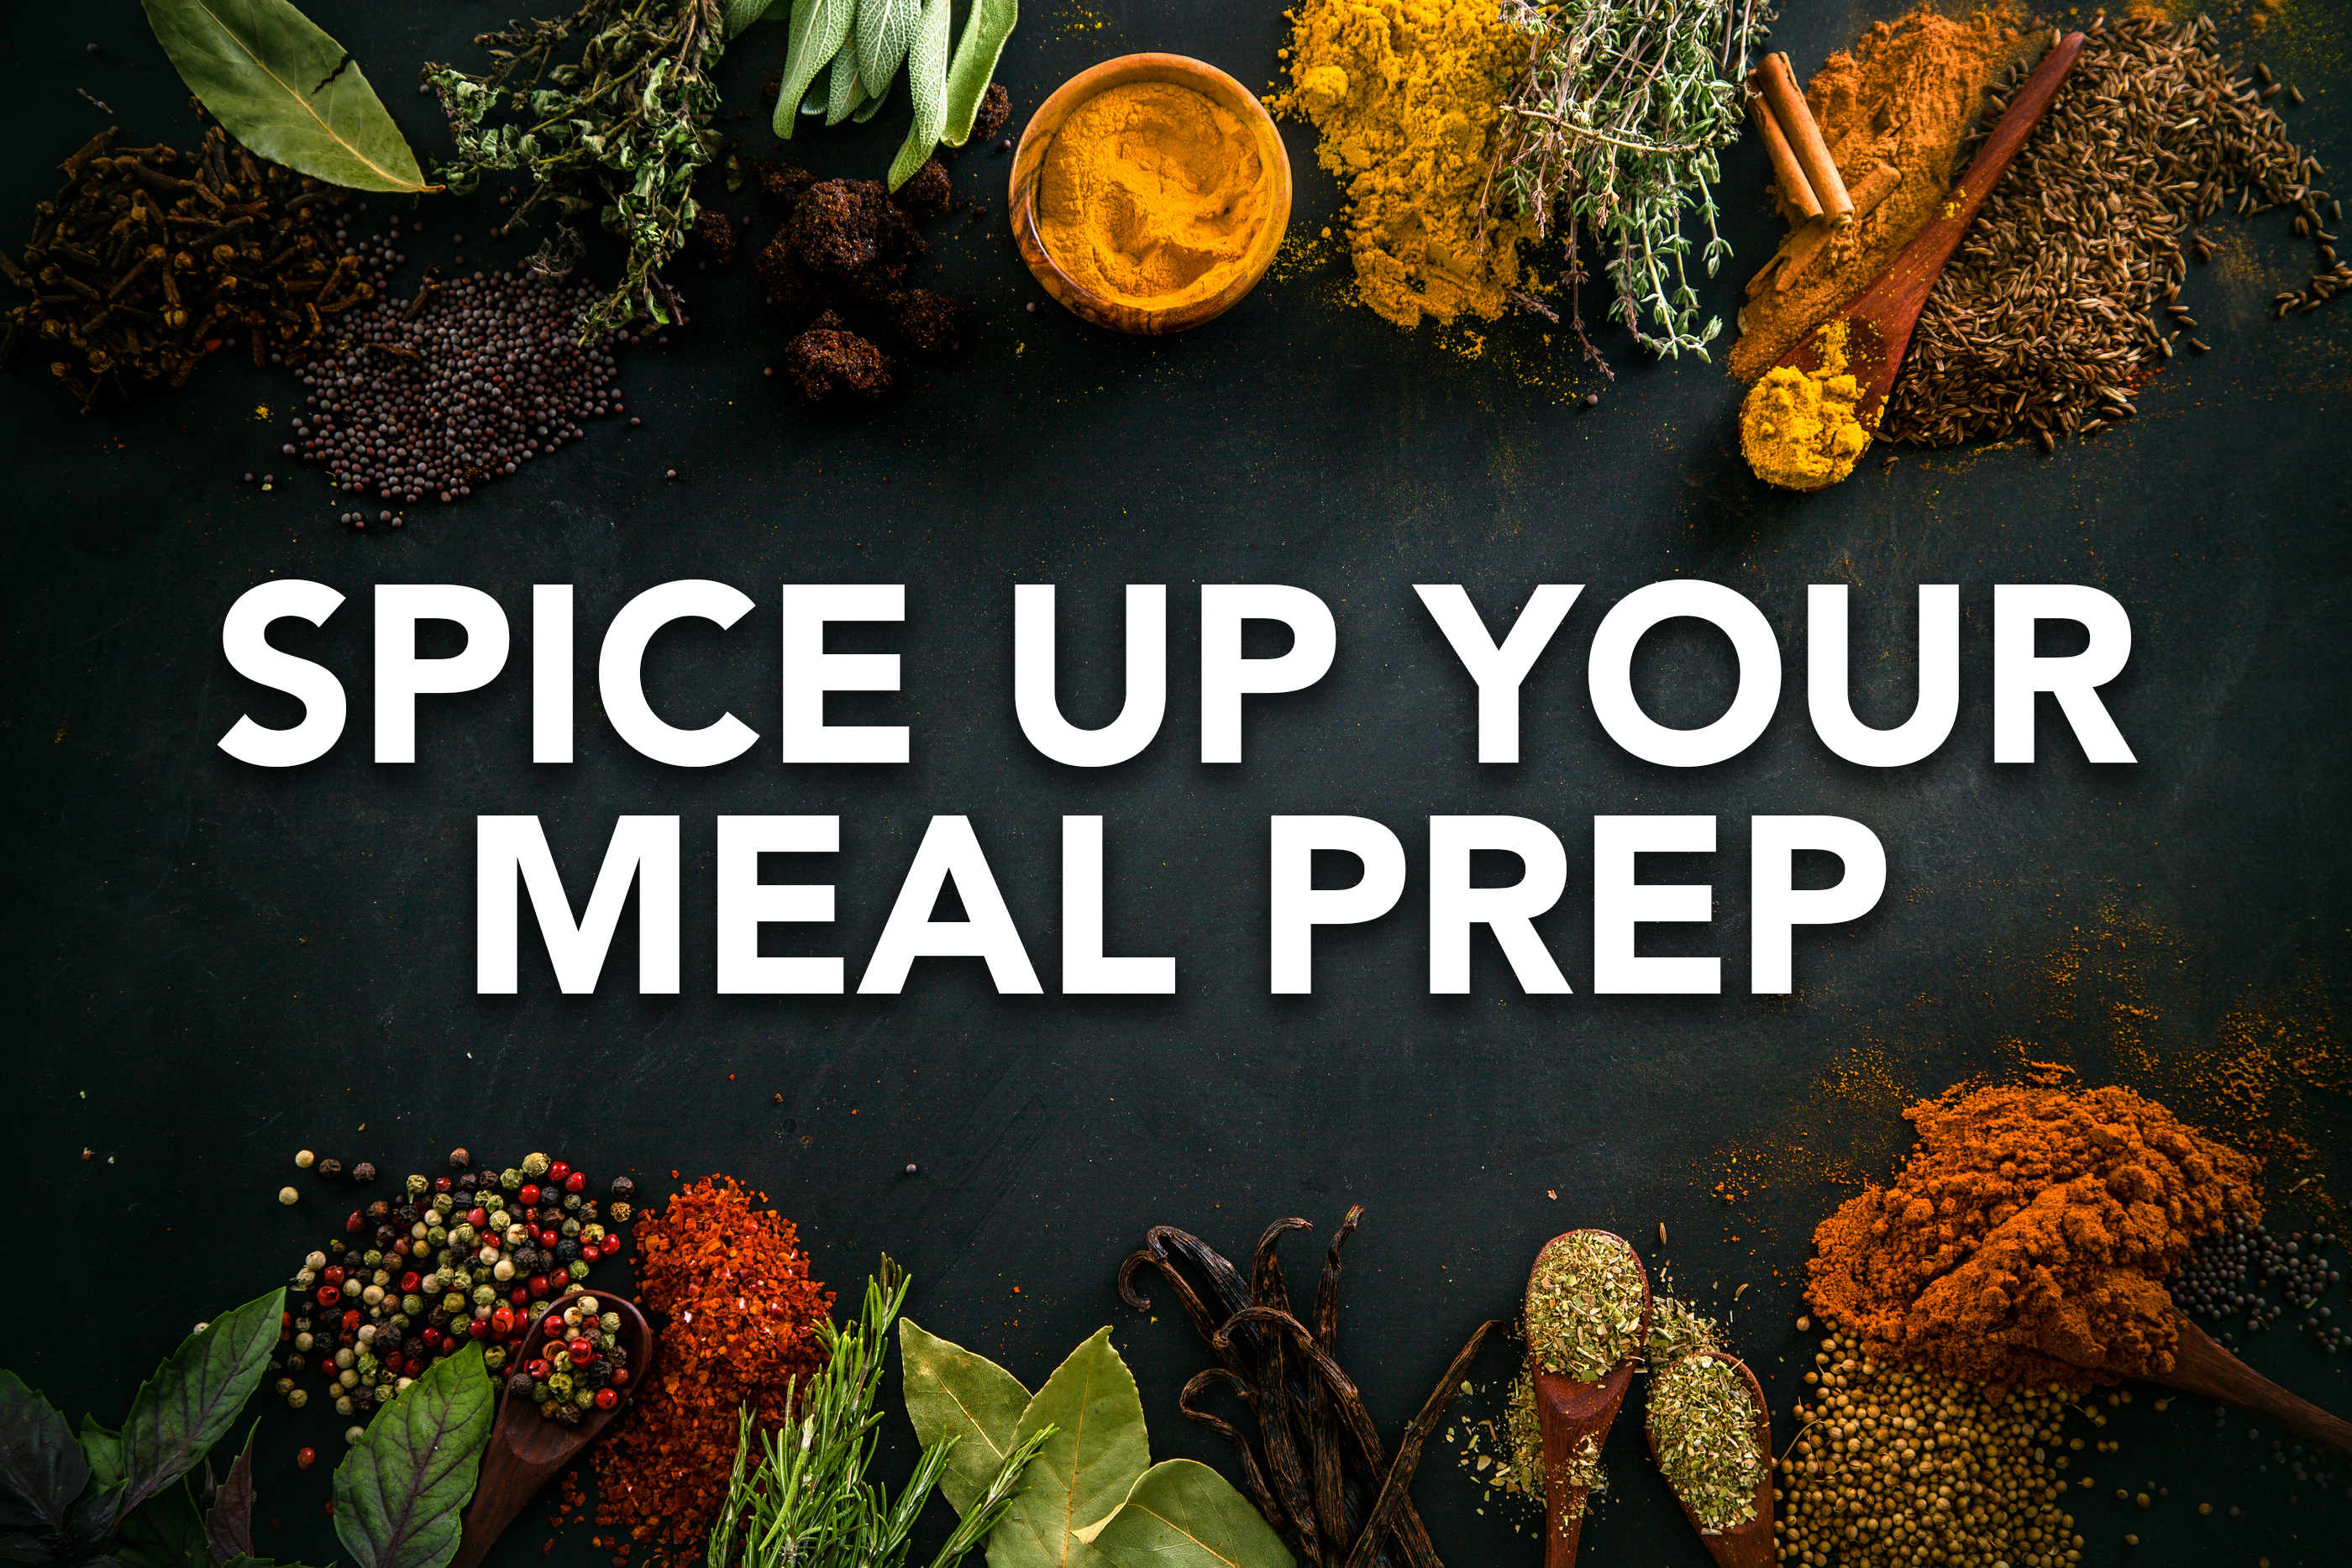 Spice Up Your Meal Prep